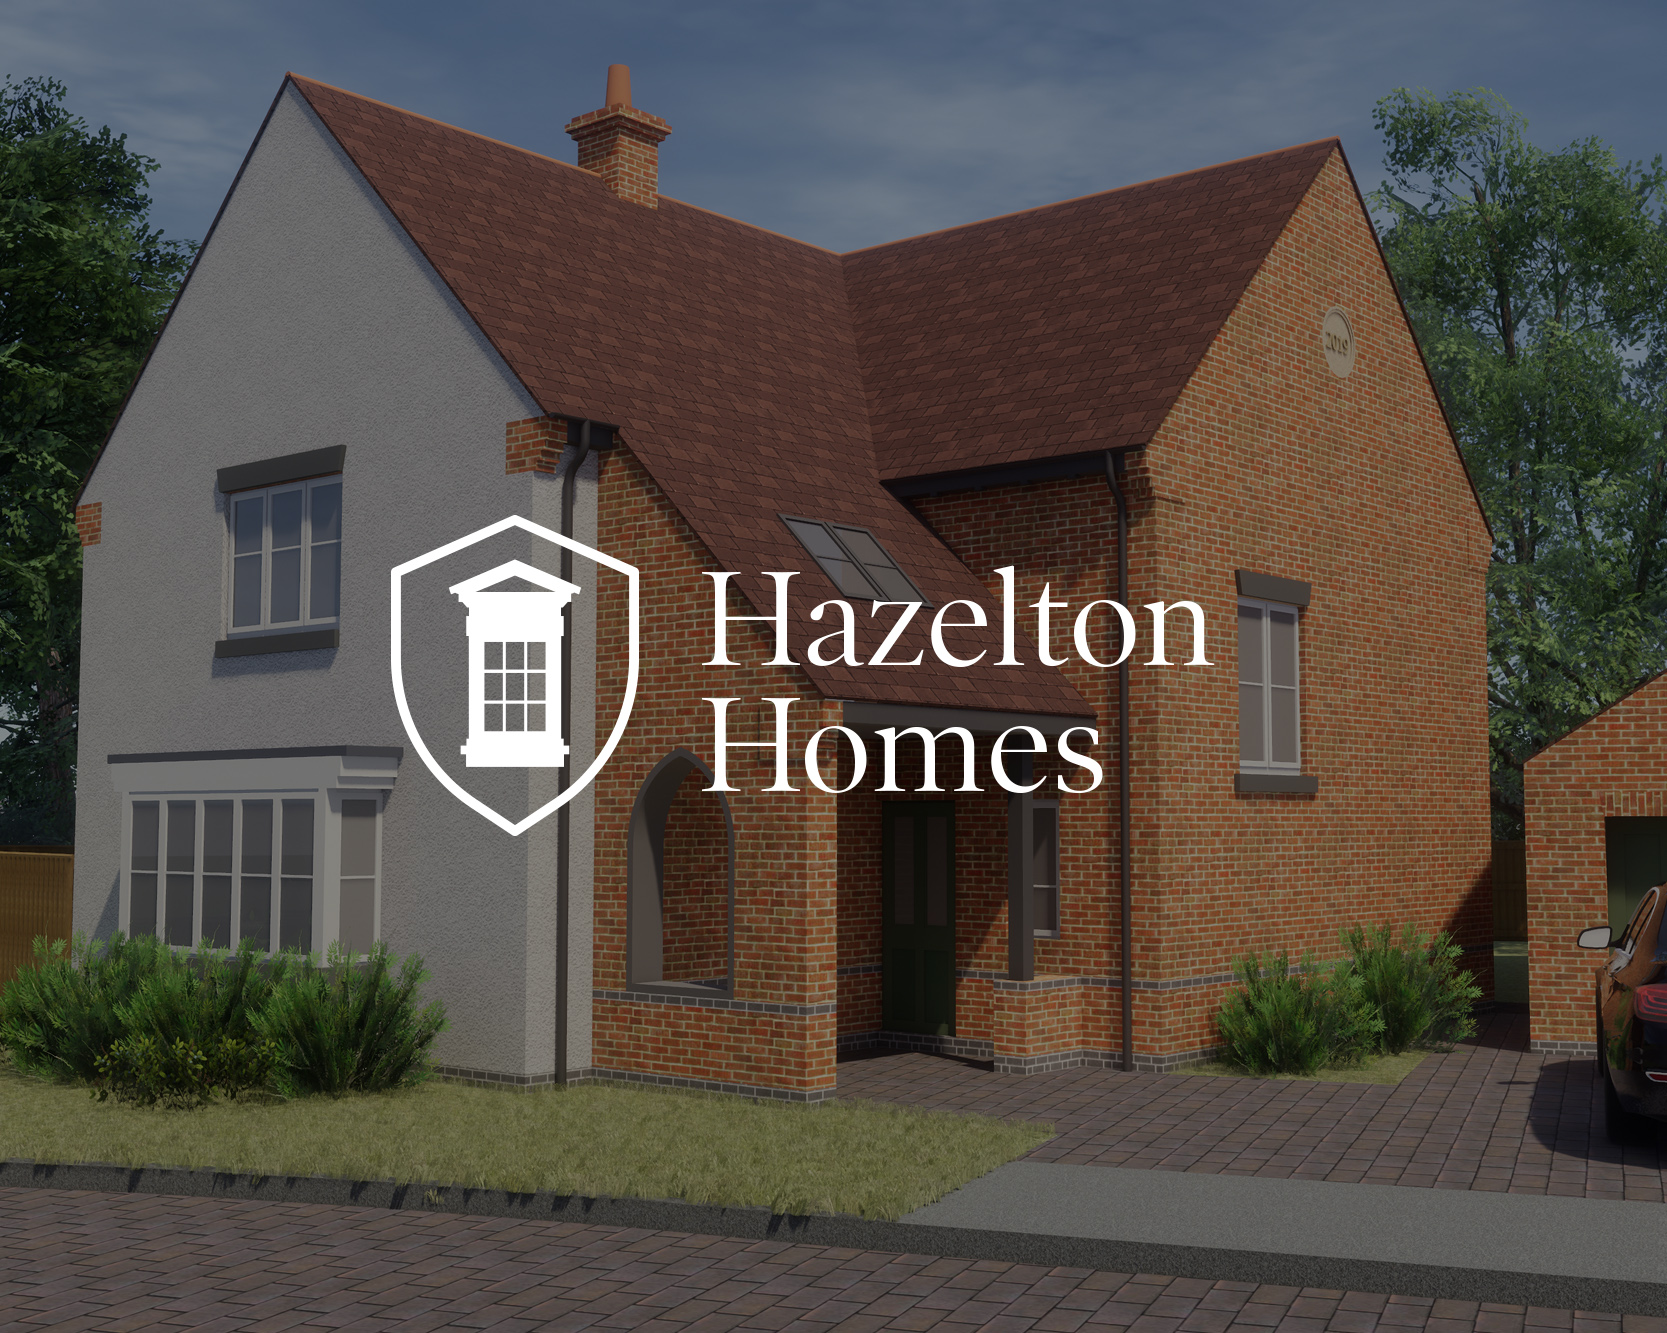 HG_Hazelton Homes Lead slide.jpg